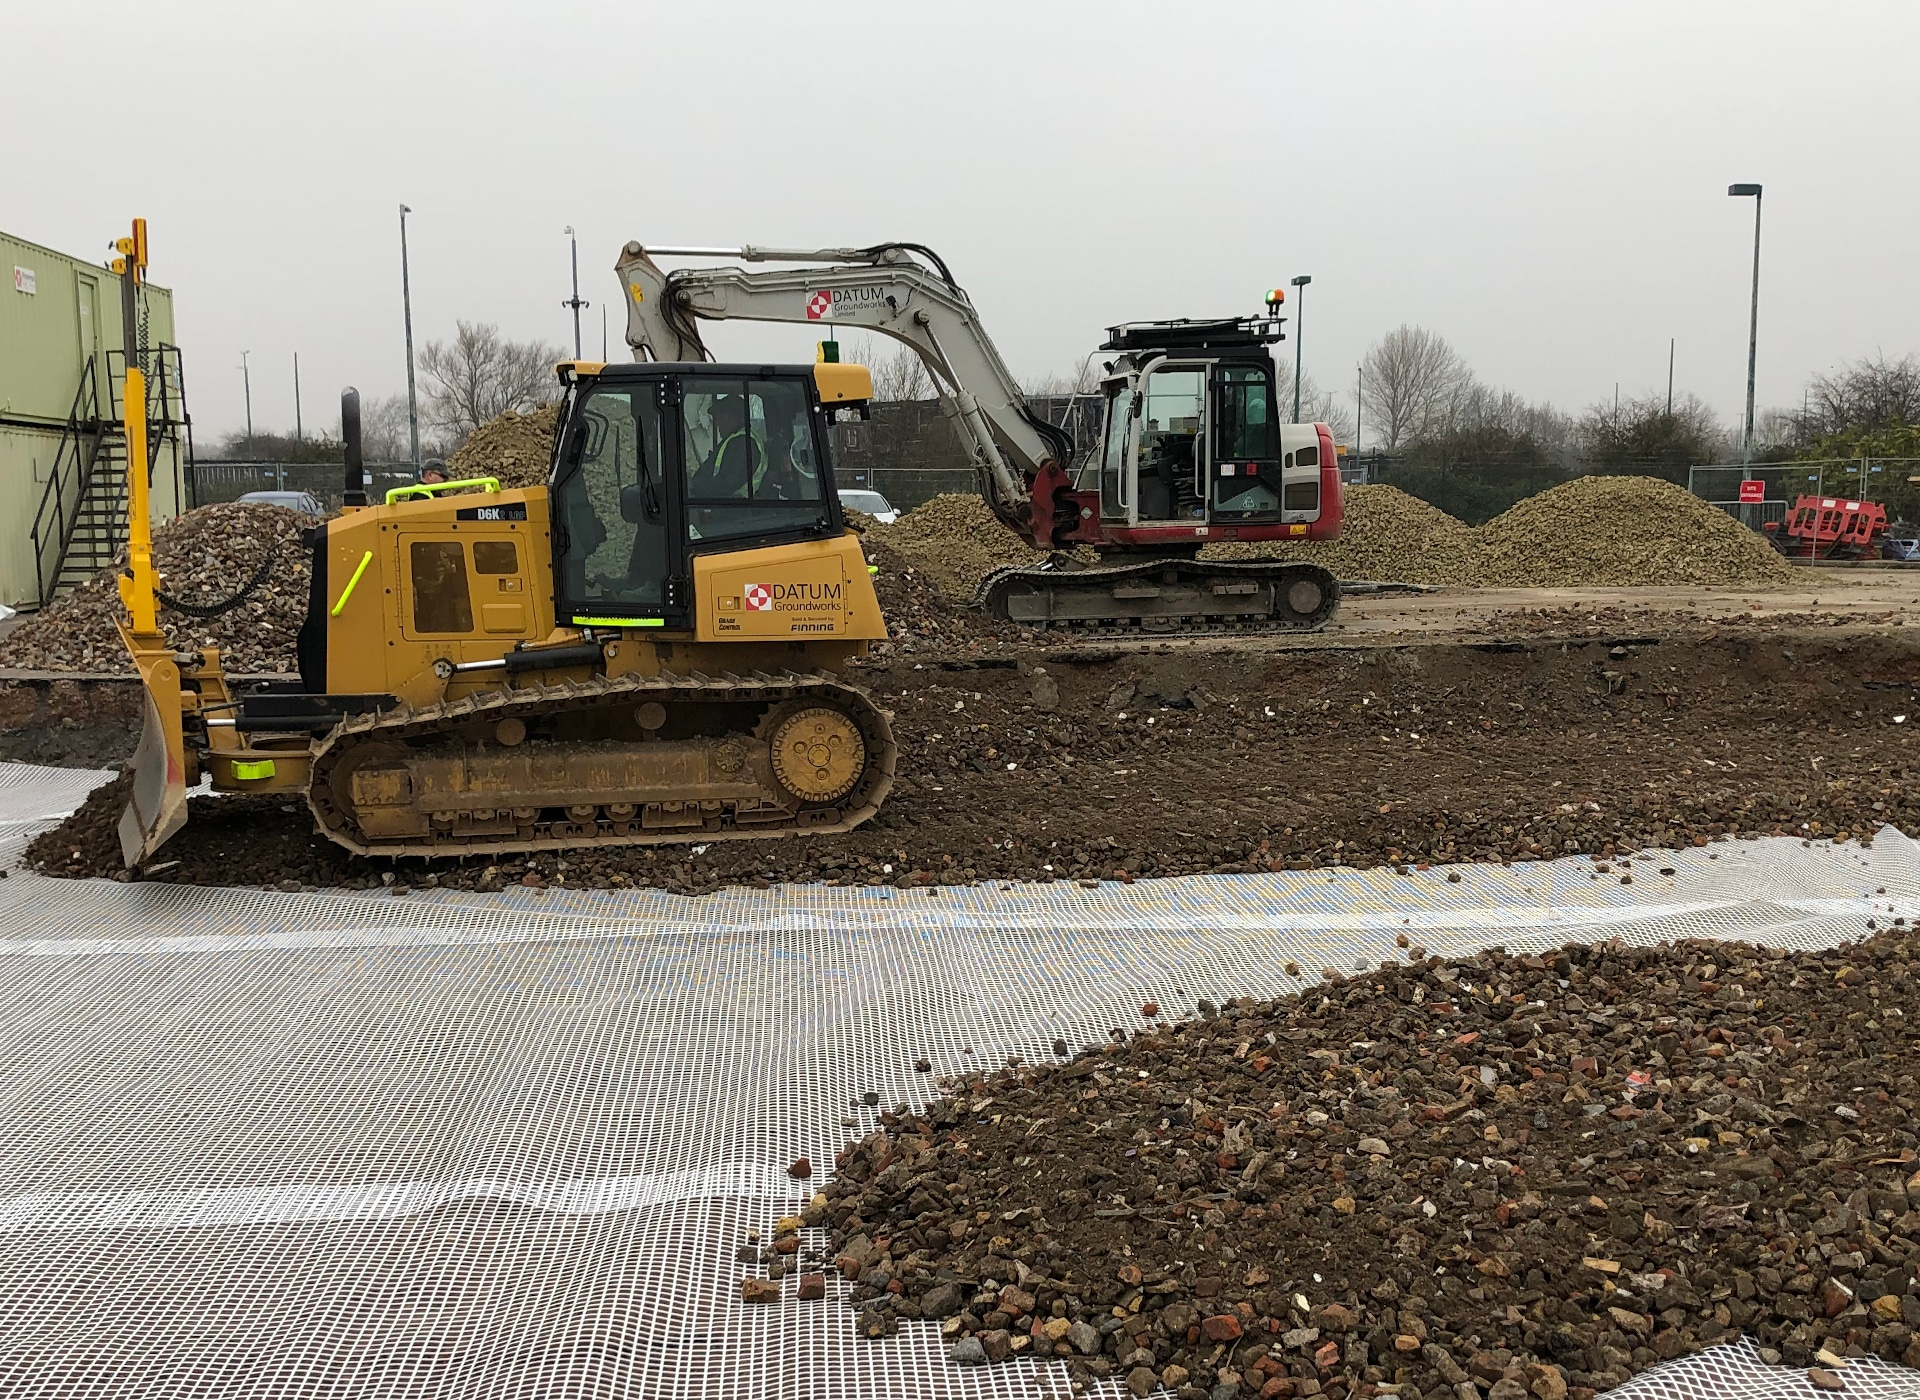 Site Setup Enabling Works - Datum Groundworks